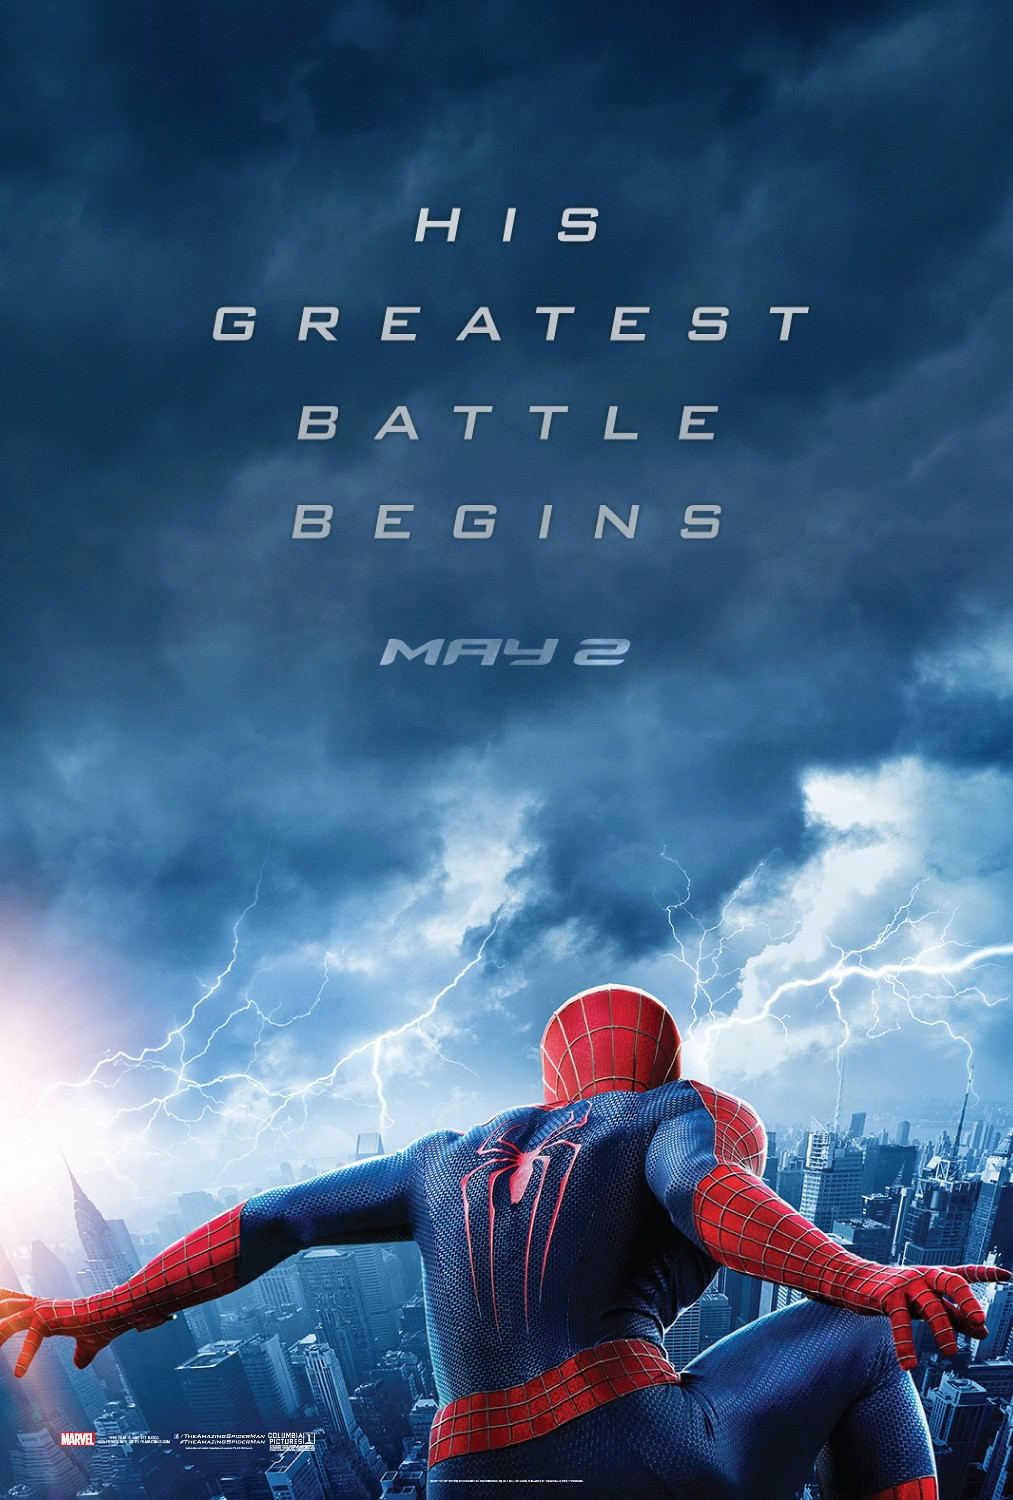 The Amazing Spider-Man 2-Official Poster Banner PROMO POSTER XLG-18DEZEMBRO2013